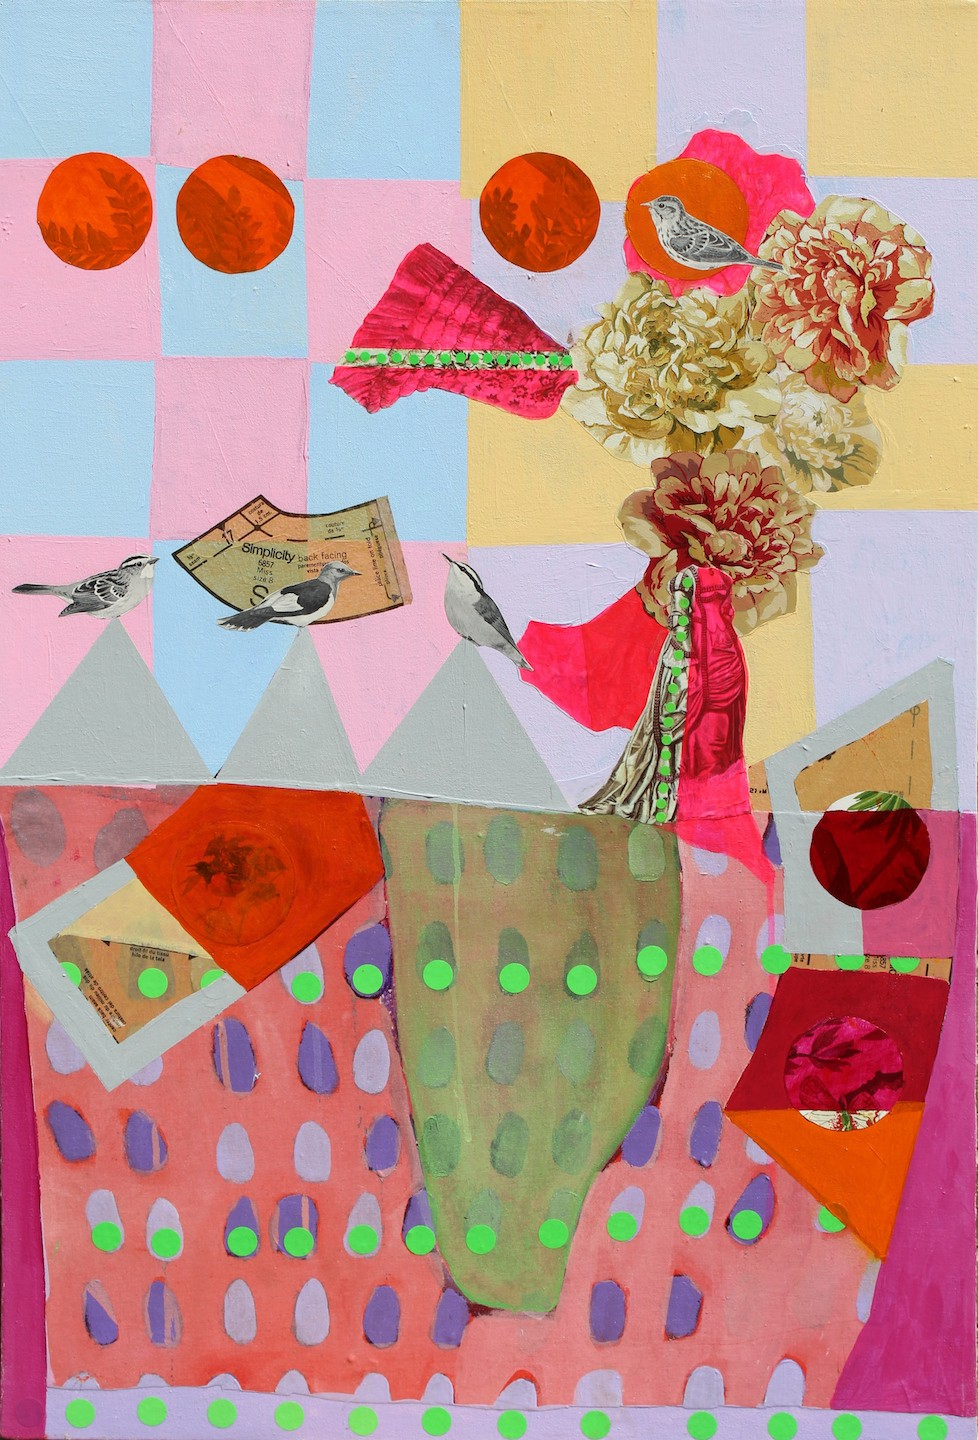 ricci_botanical_1_spike_and_alice_36_x_24_acrylic_and_collage_on_canvas.jpg